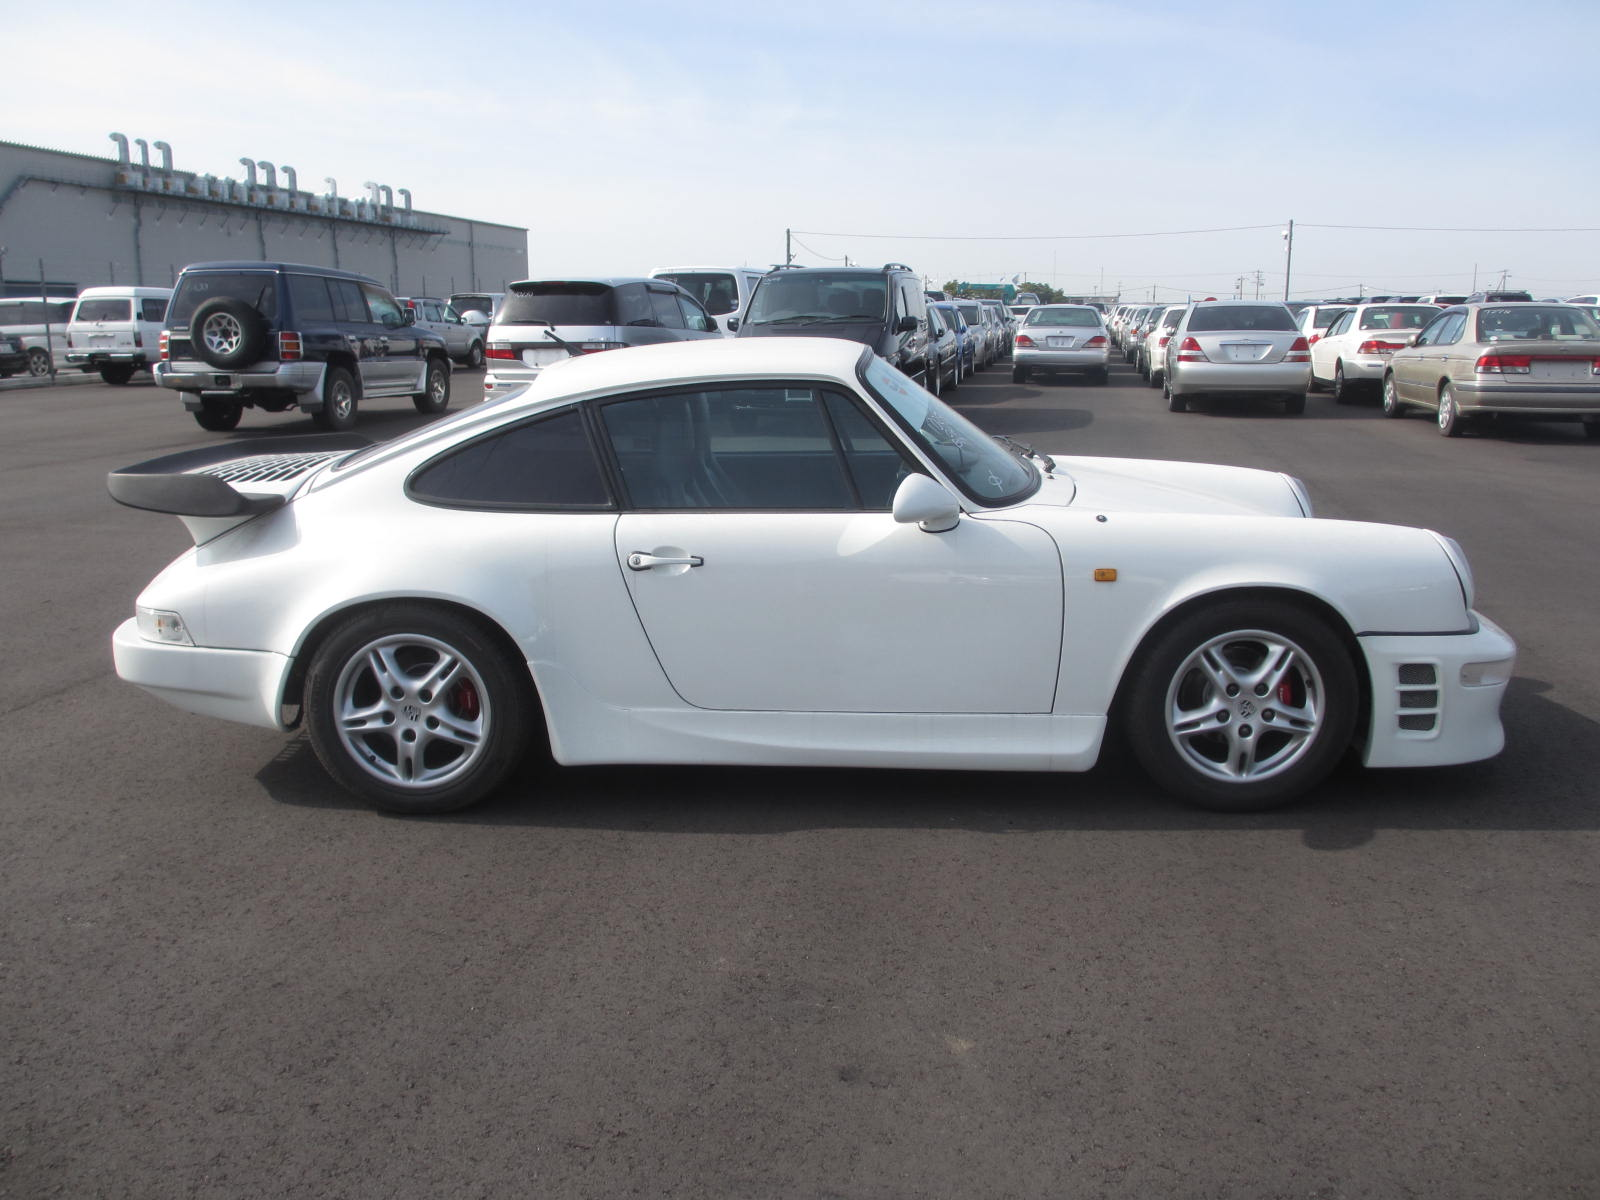 Classic Japanese Import Cars 1982 Porsche 911SC coupe